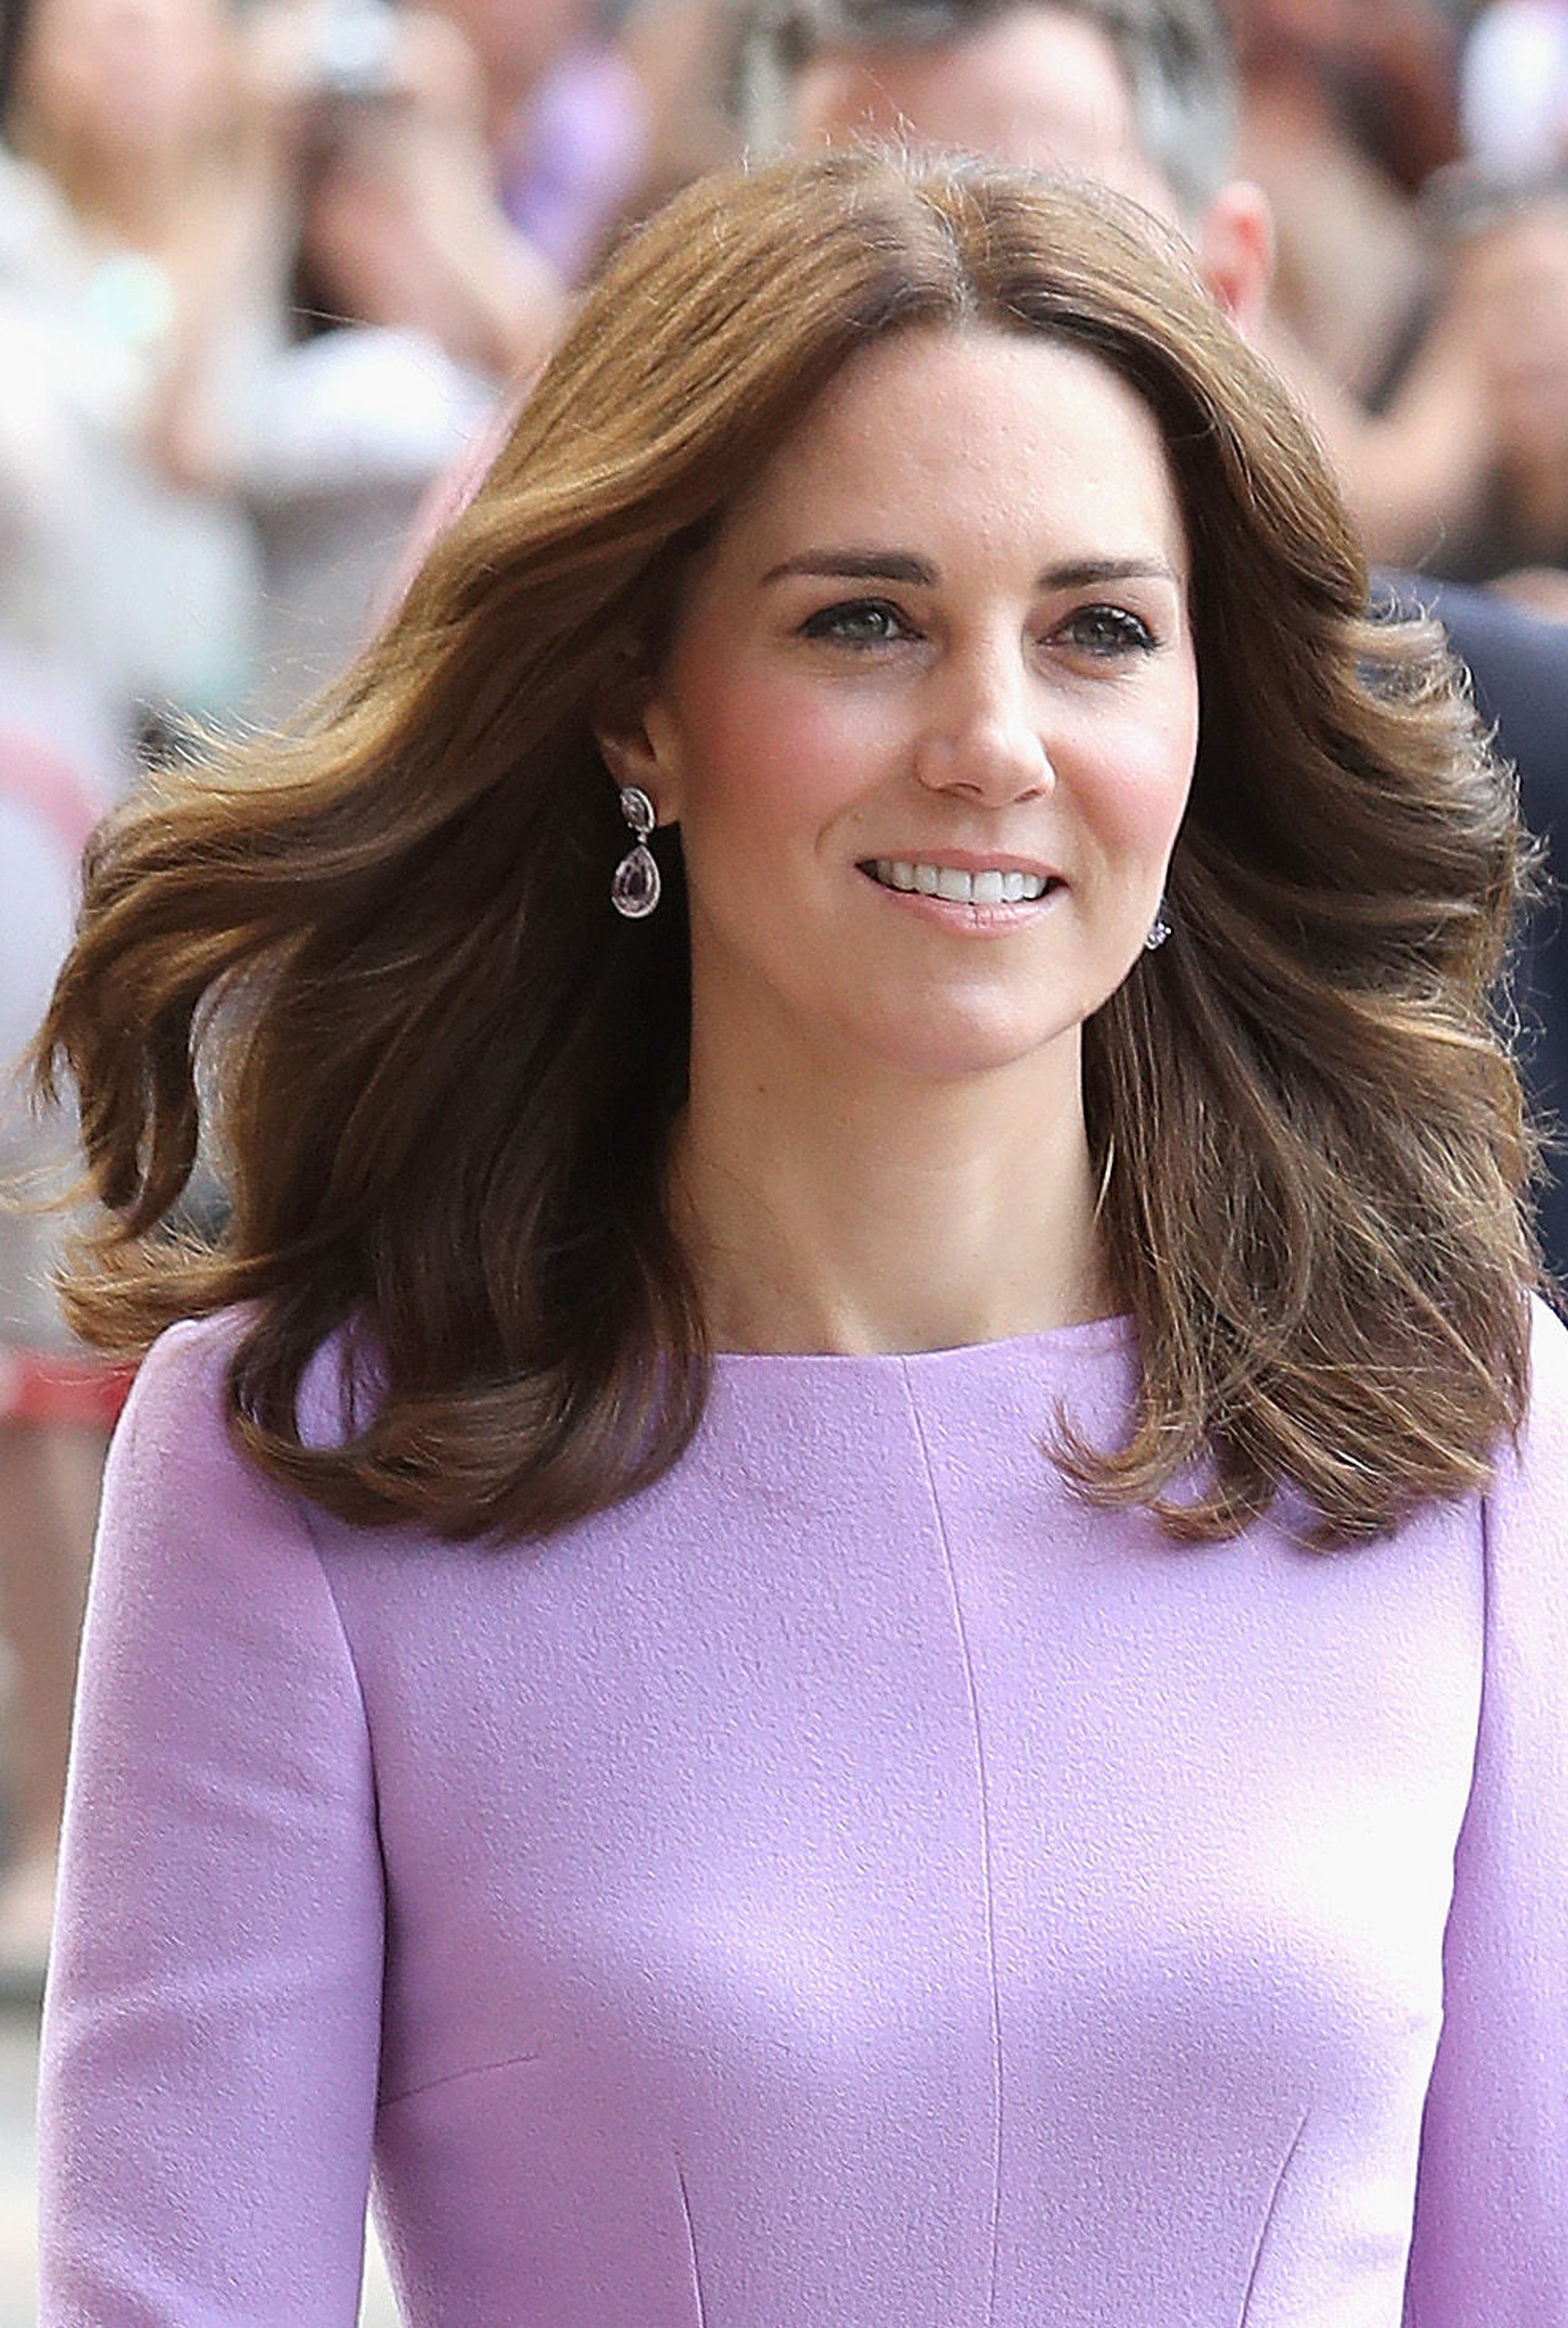 2018 hair trends the haircuts and hair colours trends to try in 2018 hair trends easy wearable ideas for updating your cut or colour urmus Images